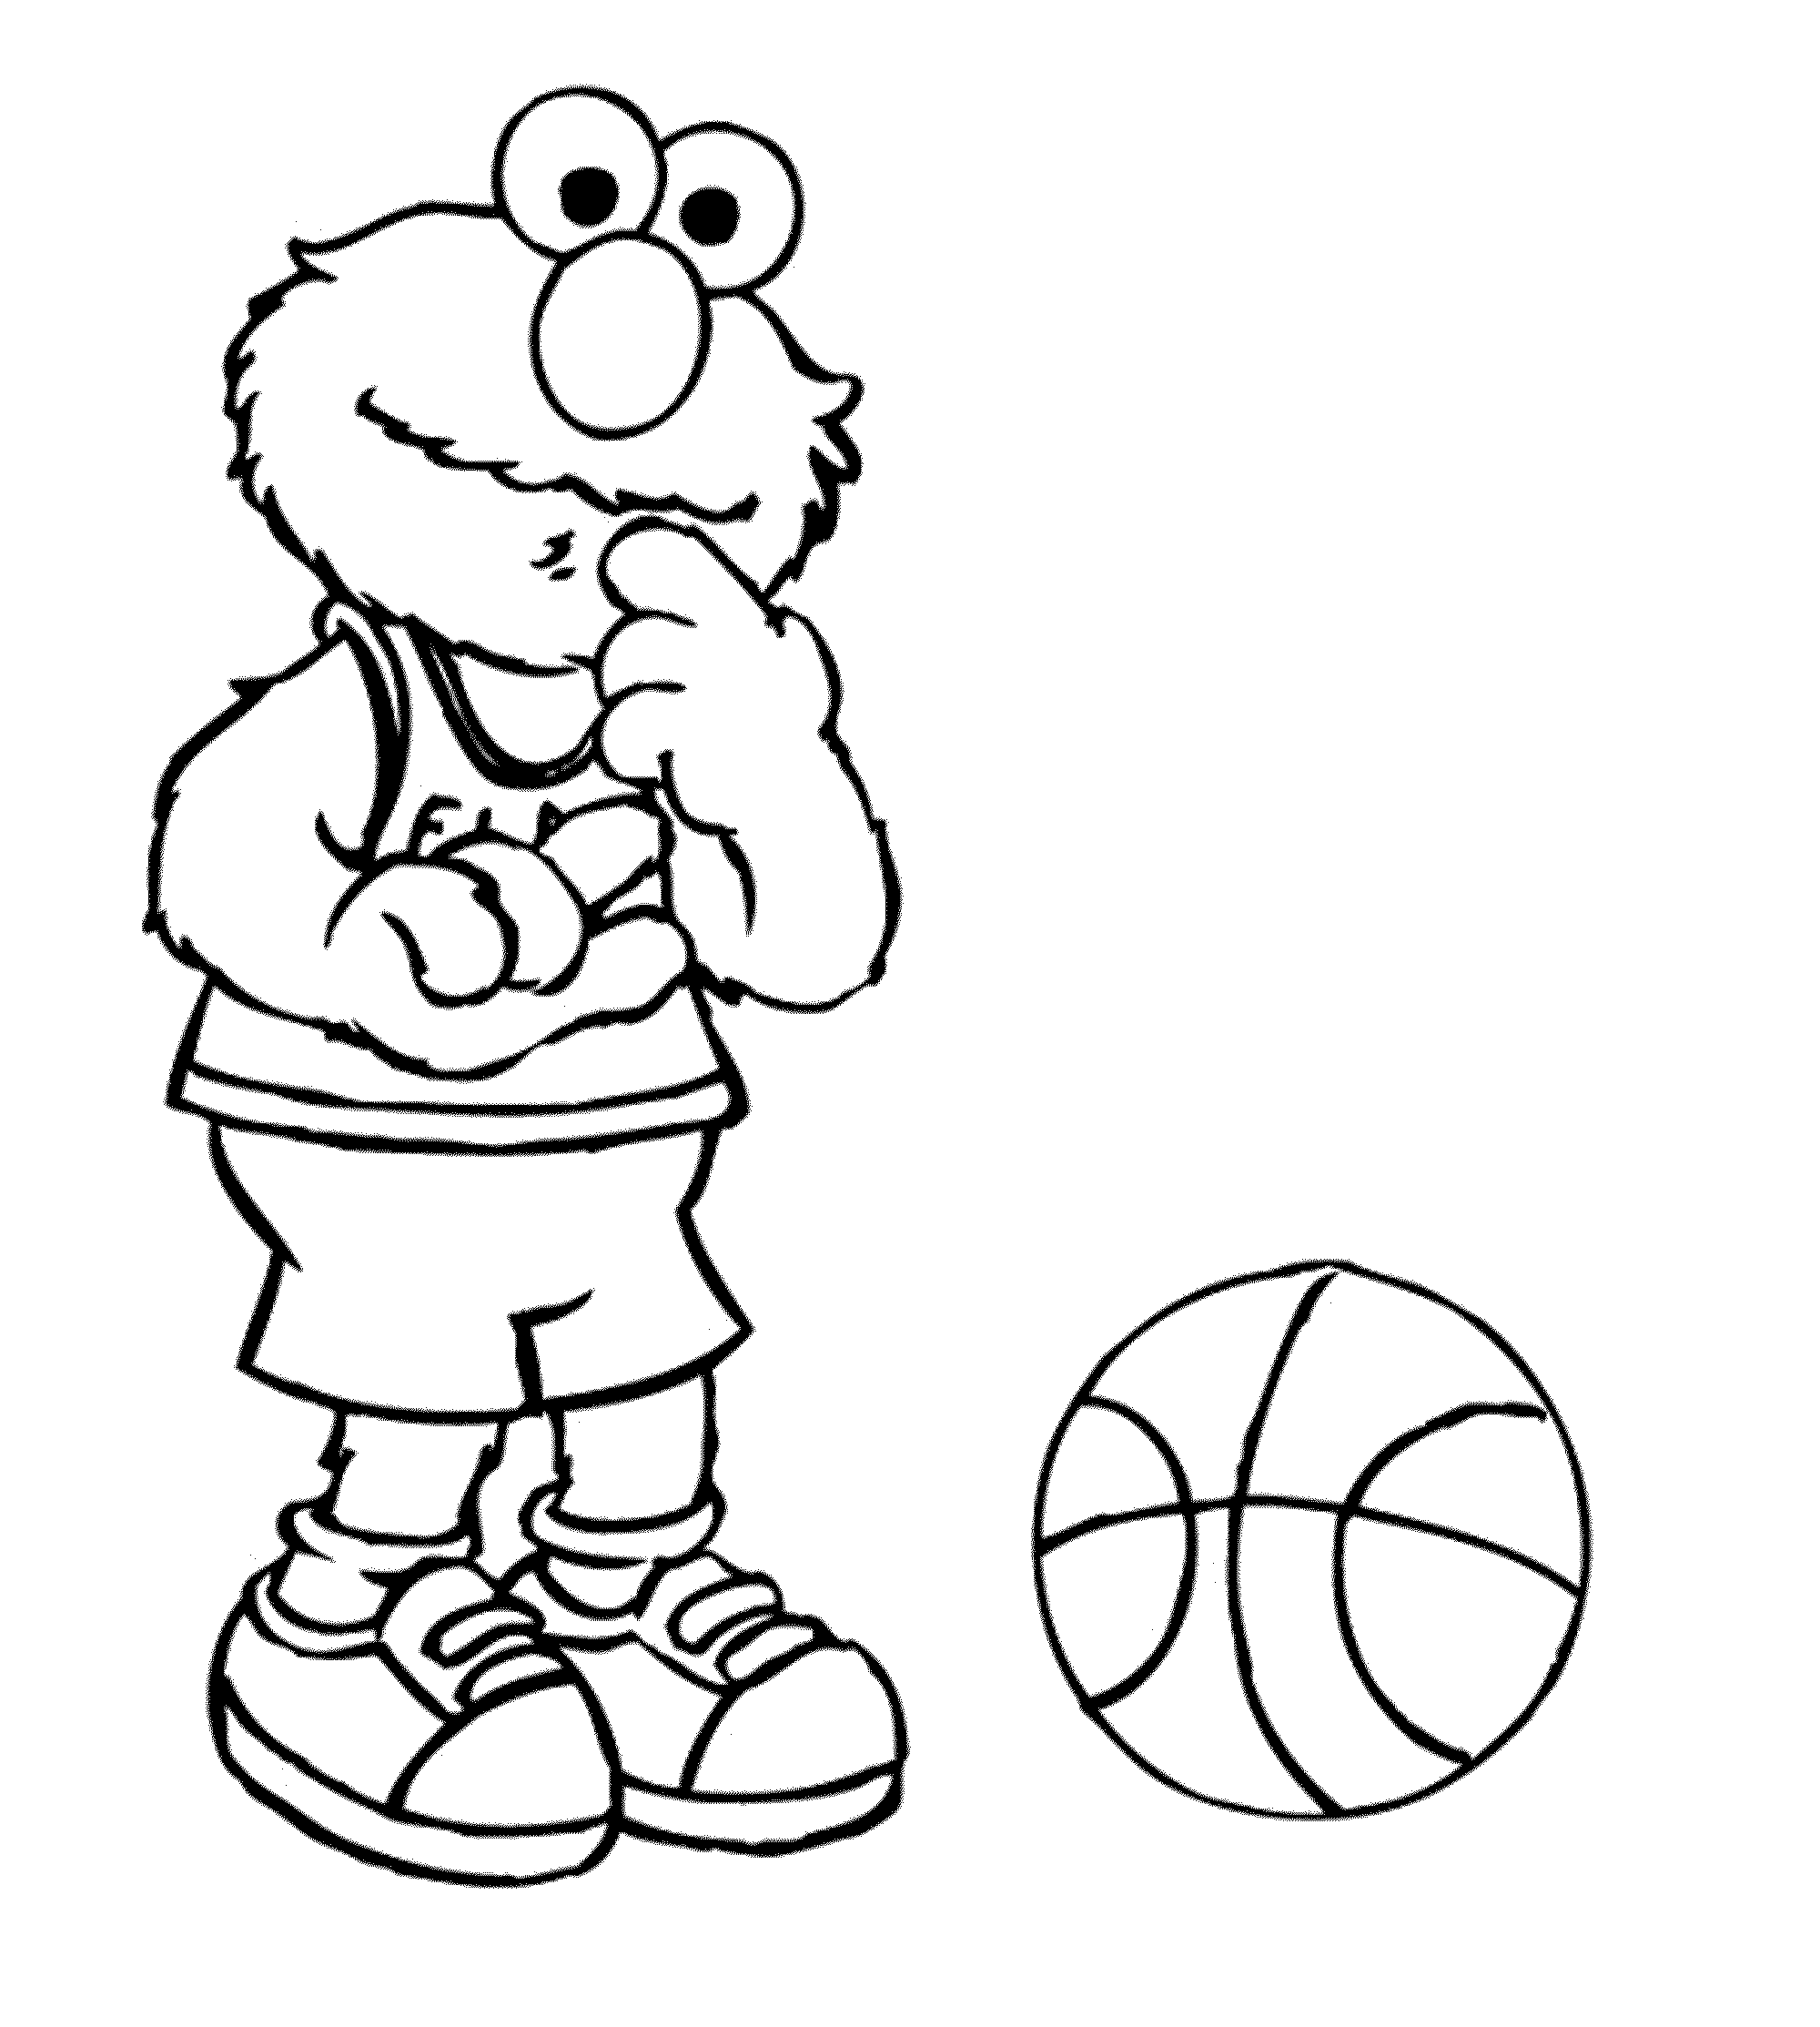 - Cartoon-basketball-coloring-pages BestAppsForKids.com